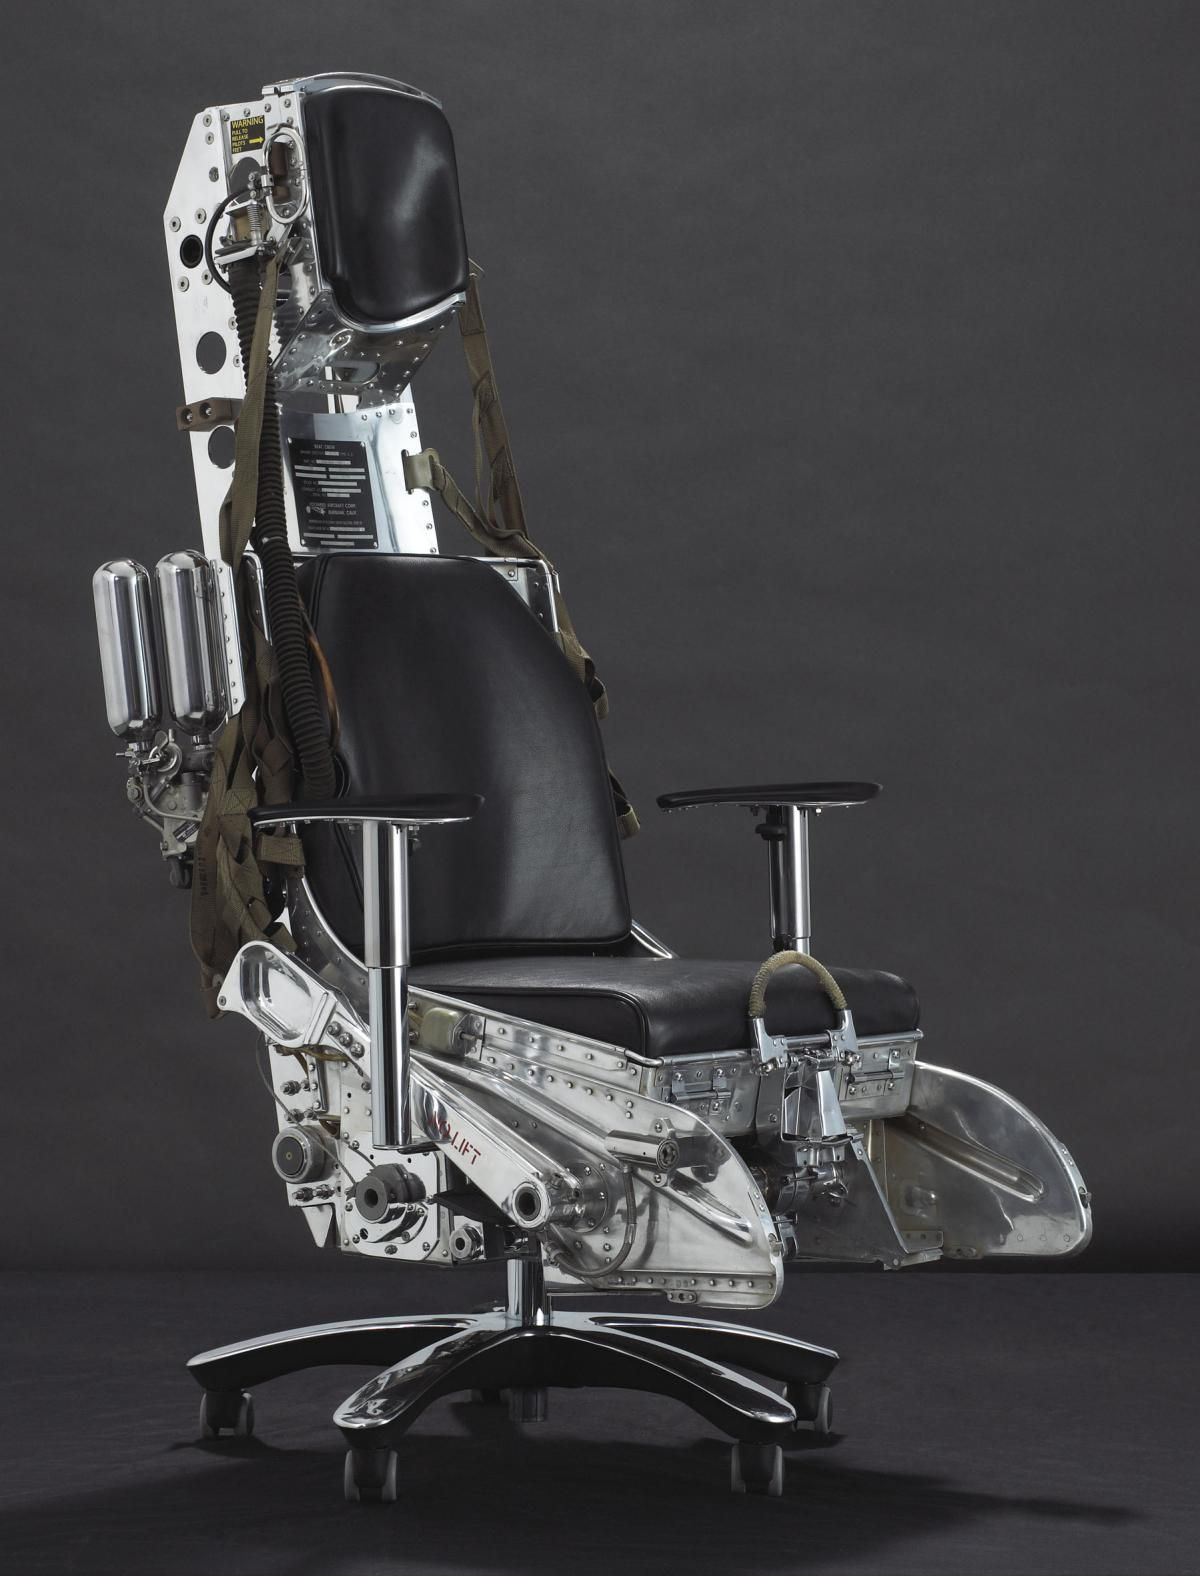 Best Office Chair Ever Ejection Seat